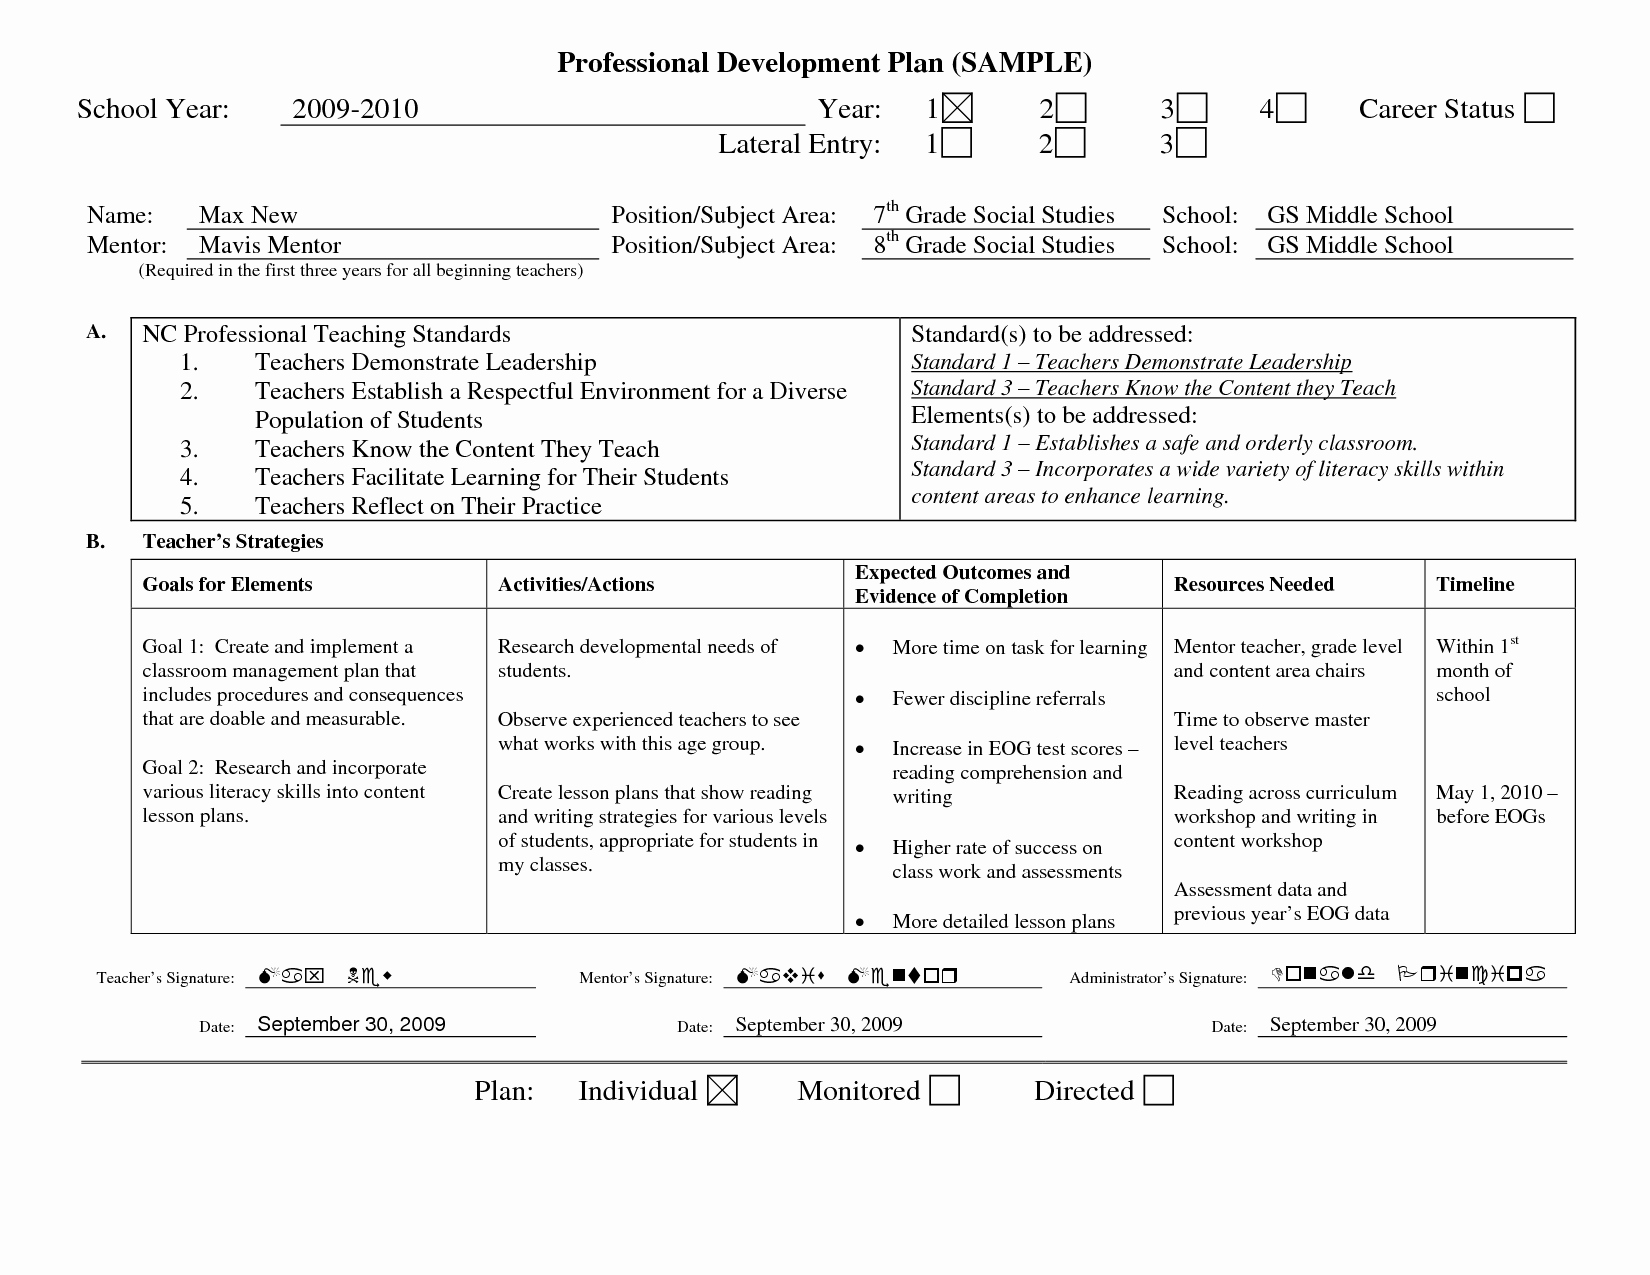 Professional Development Plan Template Awesome Professional Learning Plan Examples Google Search